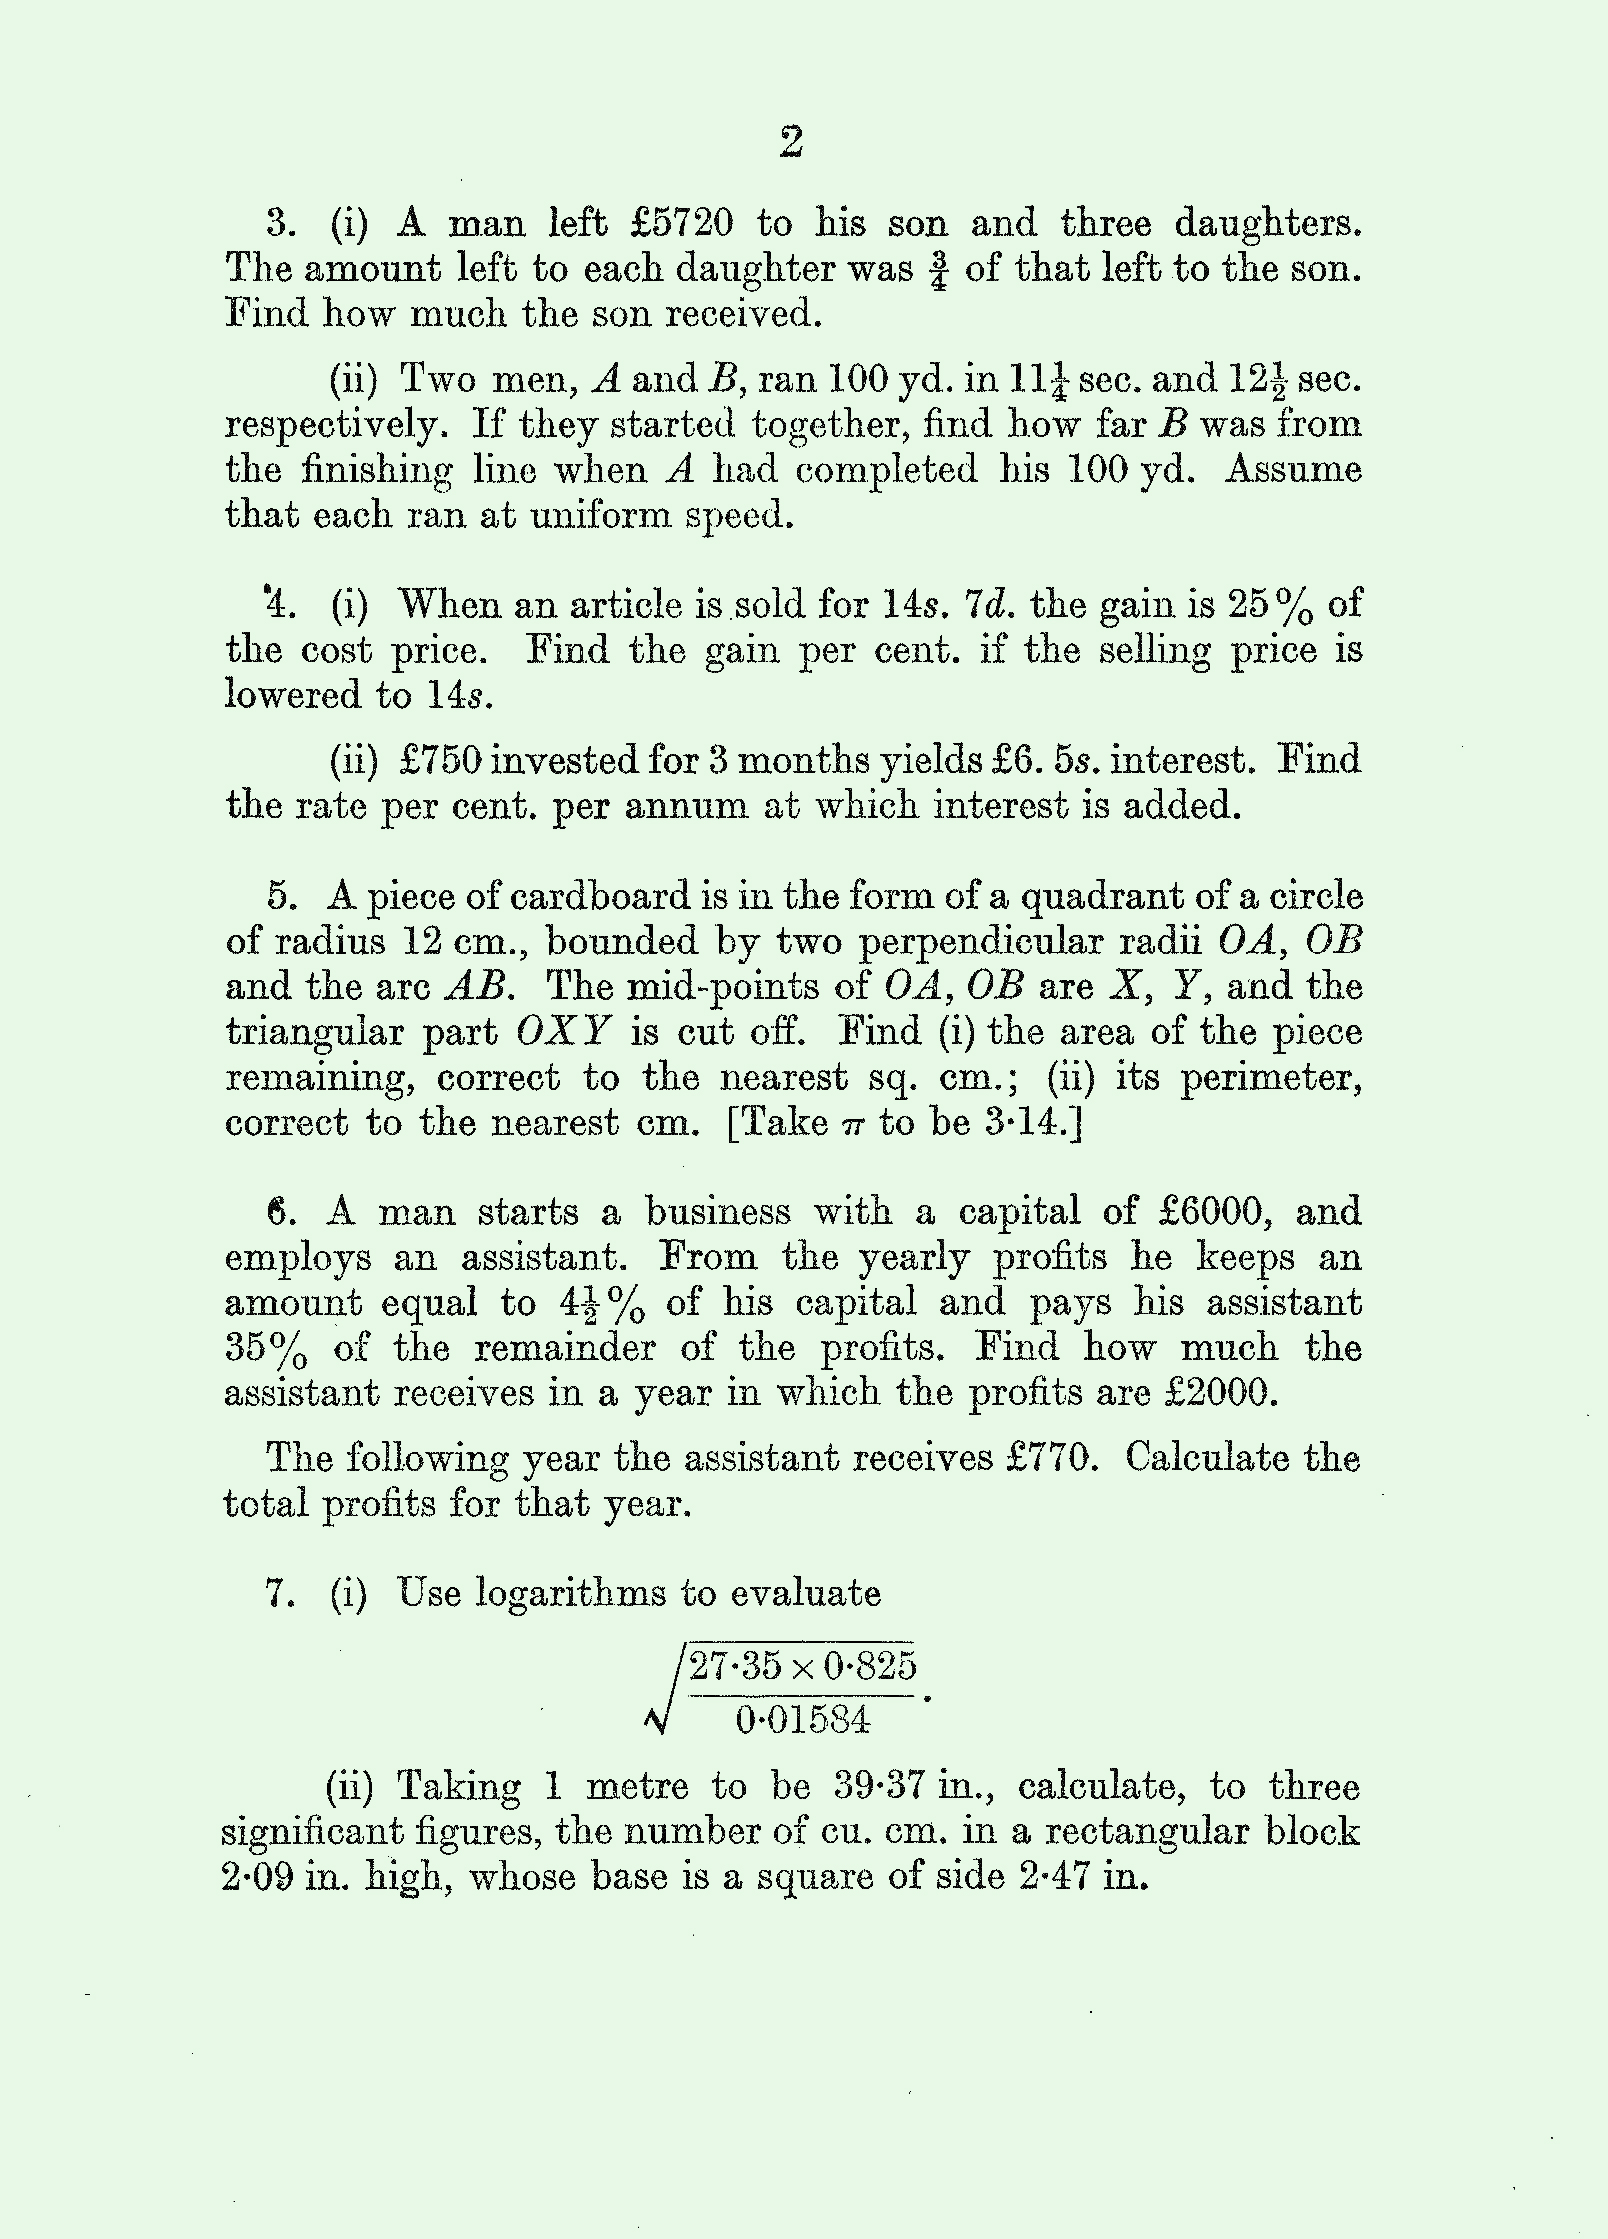 1959 Arithmetic exam page 2